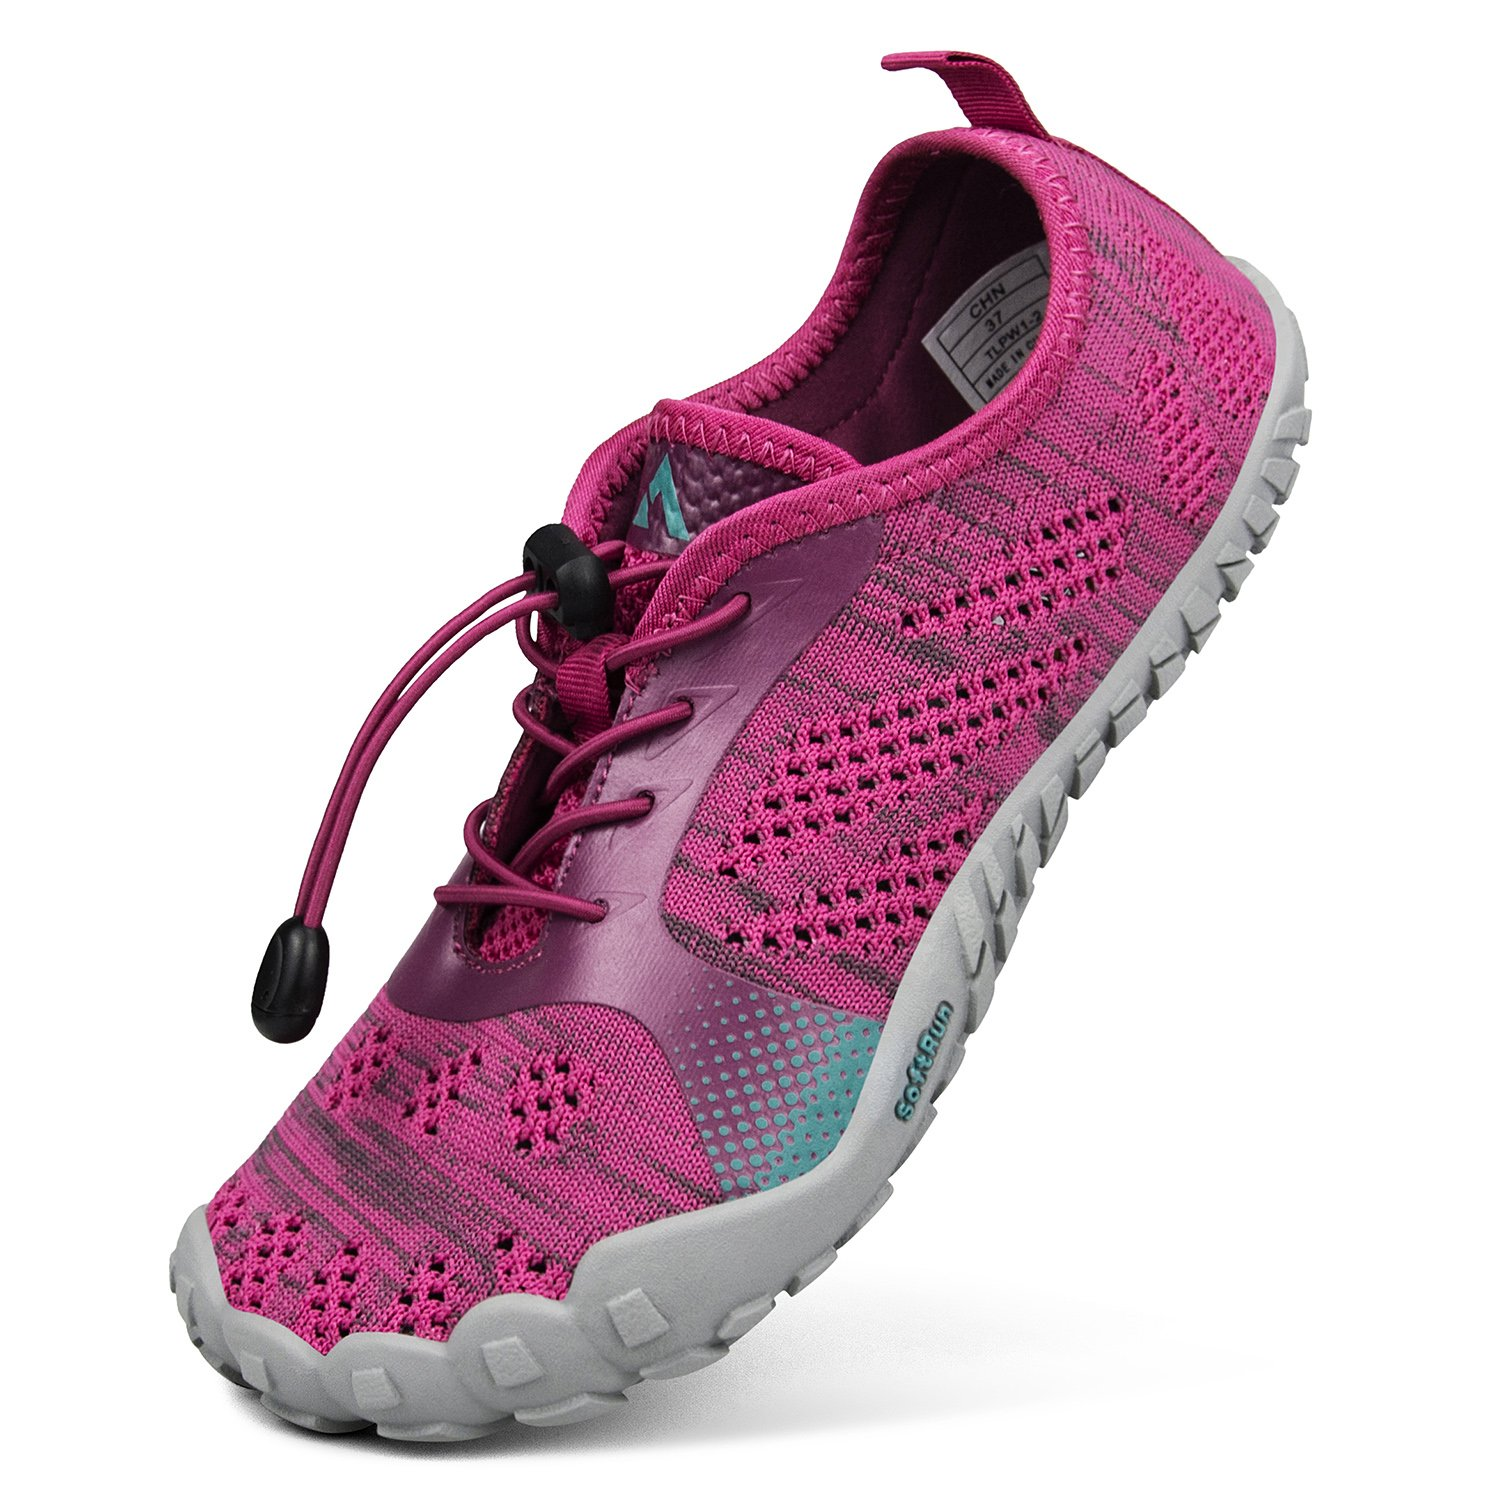 QANSI Women Shoes for Men Barefoot Running Athletics Sports Sneakers for Summer Rose Red Size 8.5